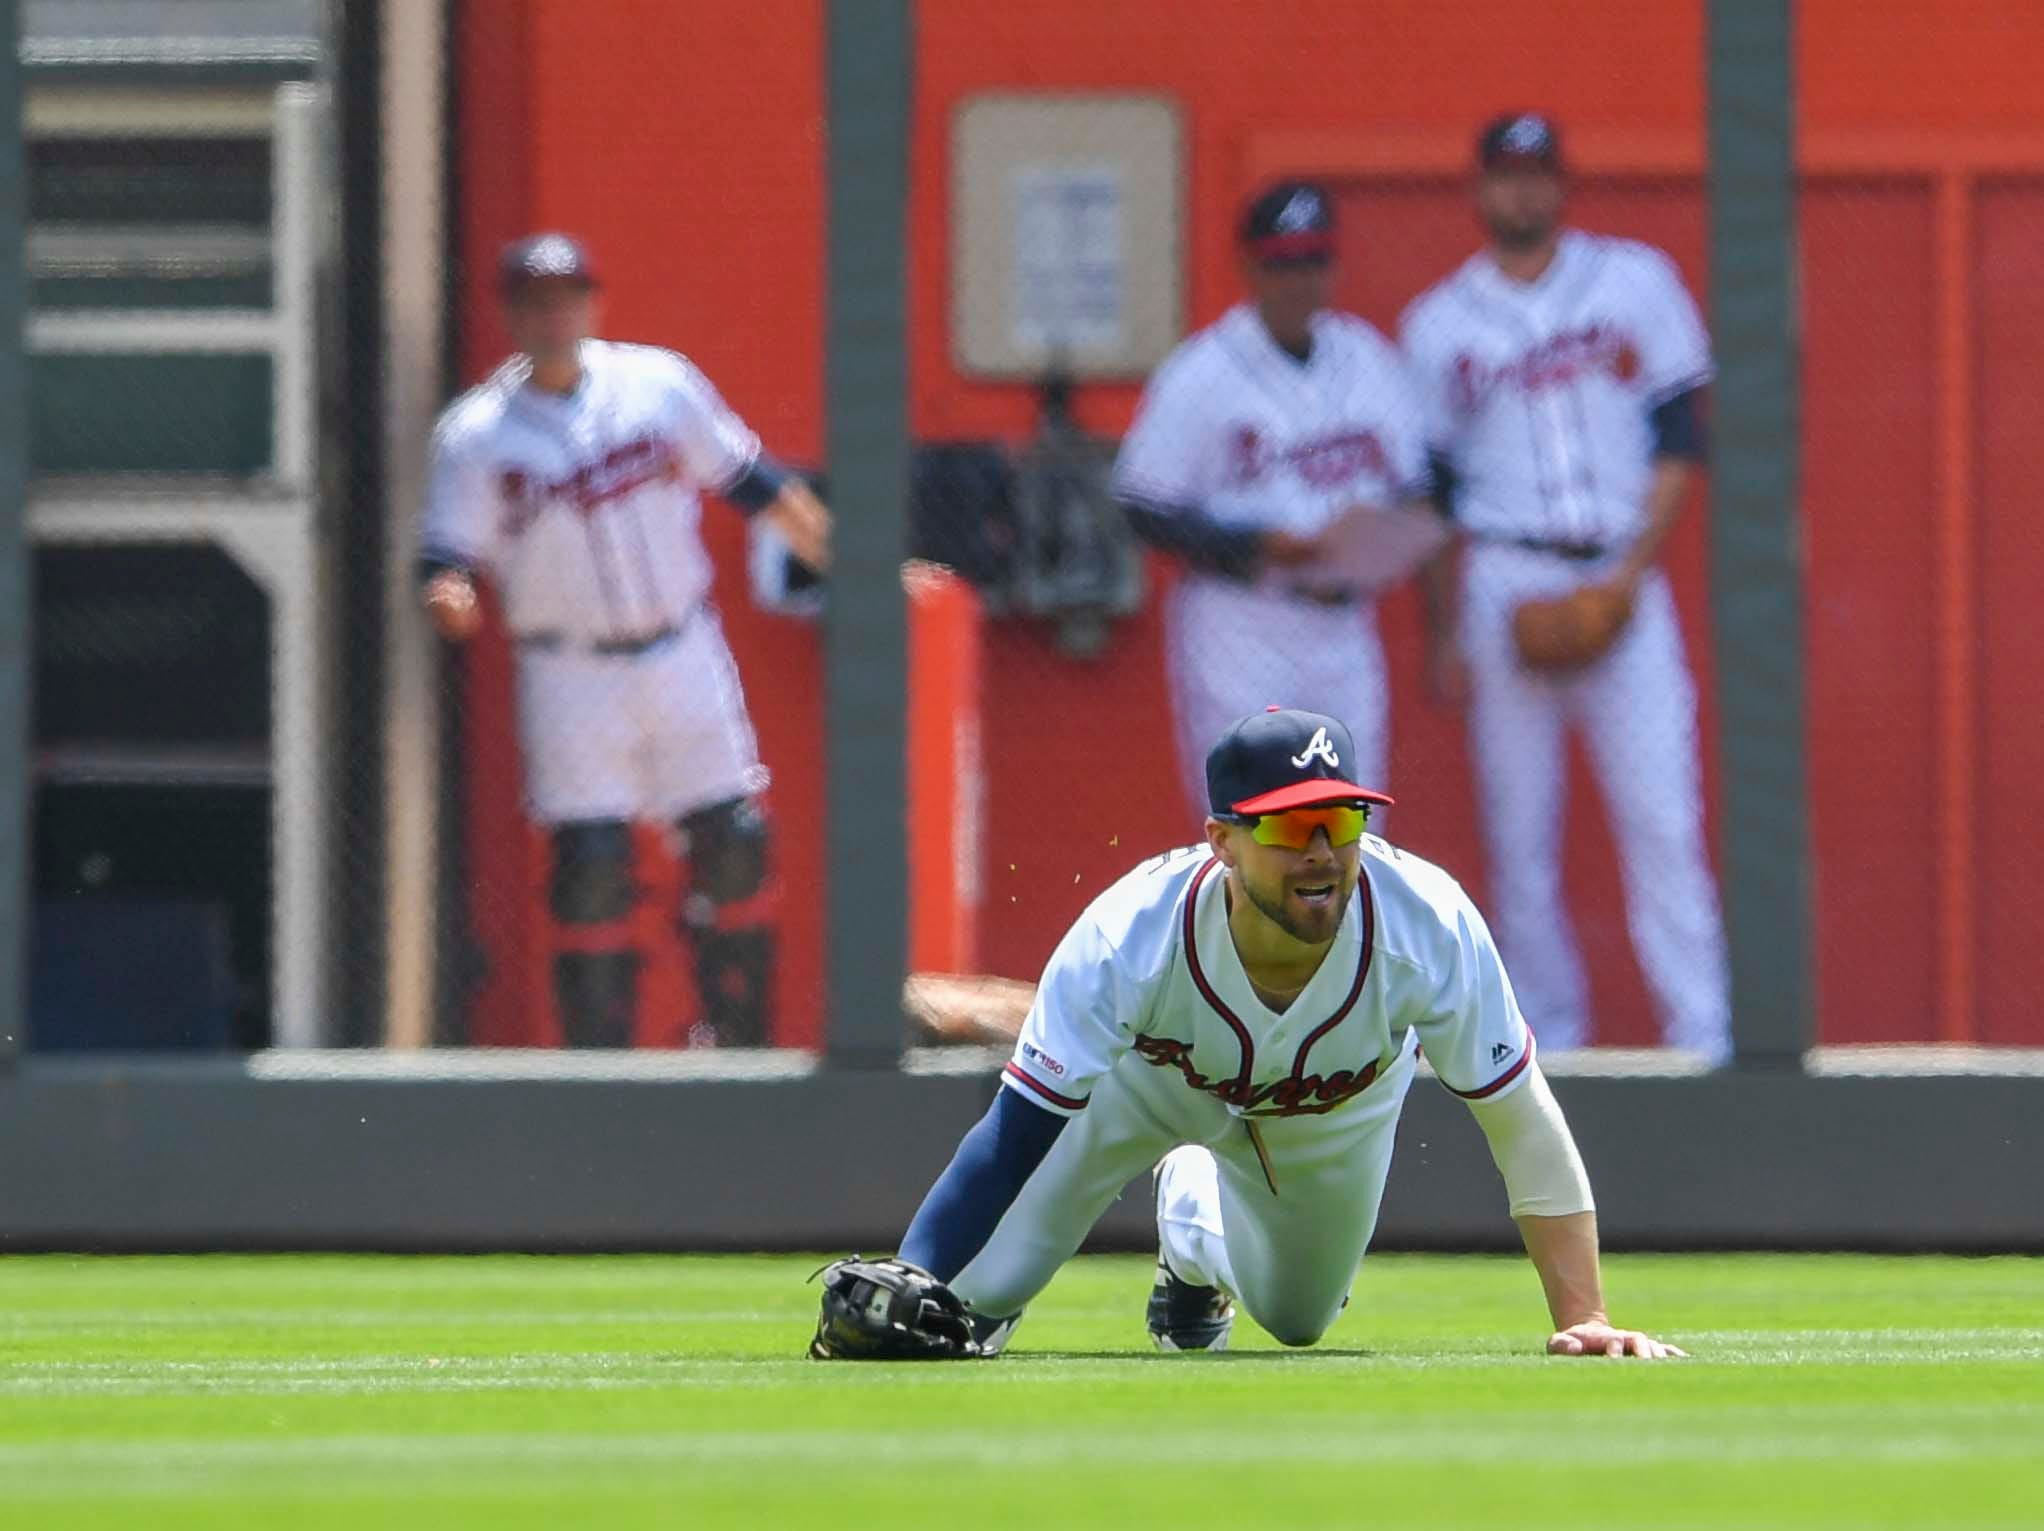 Apr 18, 2019; Atlanta, GA, USA; Atlanta Braves center fielder Ender Inciarte (11) makes a sliding catch on a ball hit by Arizona Diamondbacks third baseman Ildemaro Vargas (15) during the sixth inning at SunTrust Park. Mandatory Credit: Dale Zanine-USA TODAY Sports